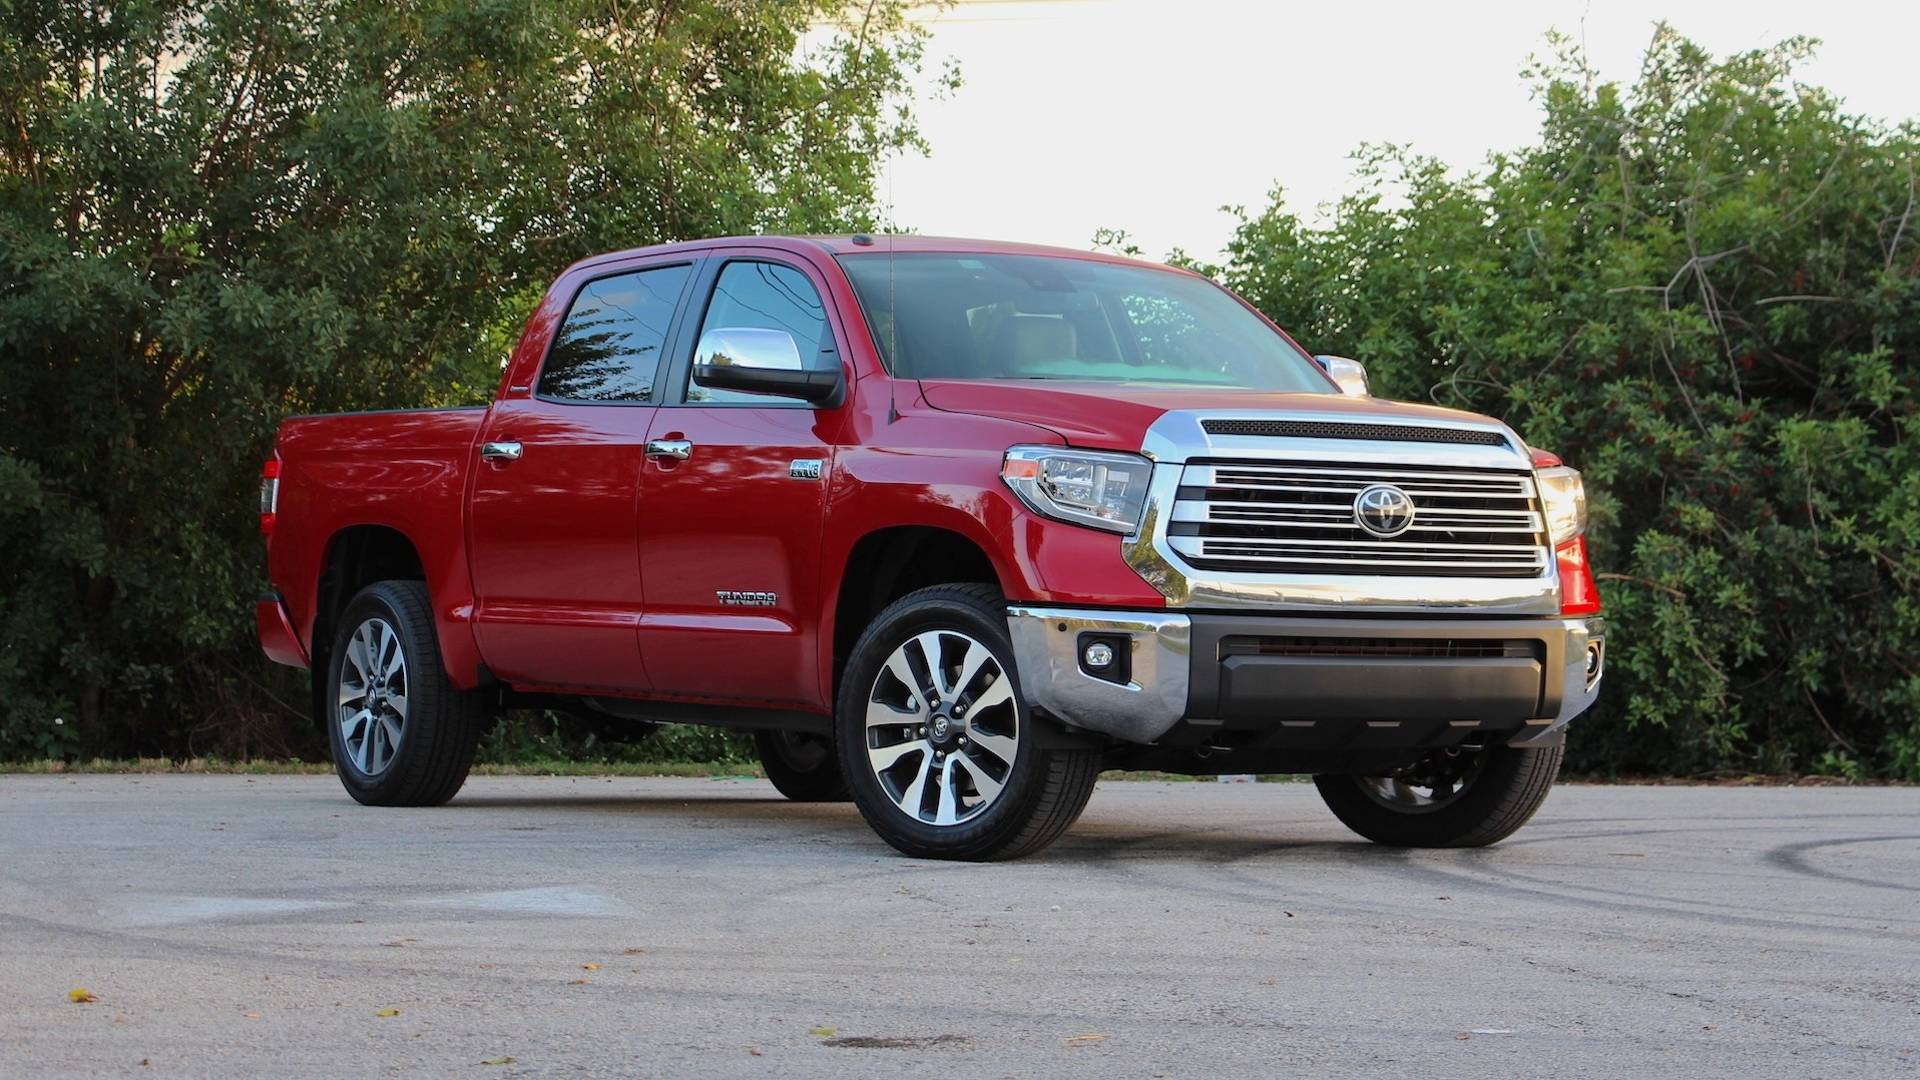 Toyota Tundra Towing Capacity >> 2018 Toyota Tundra Review: Oldie But Goodie